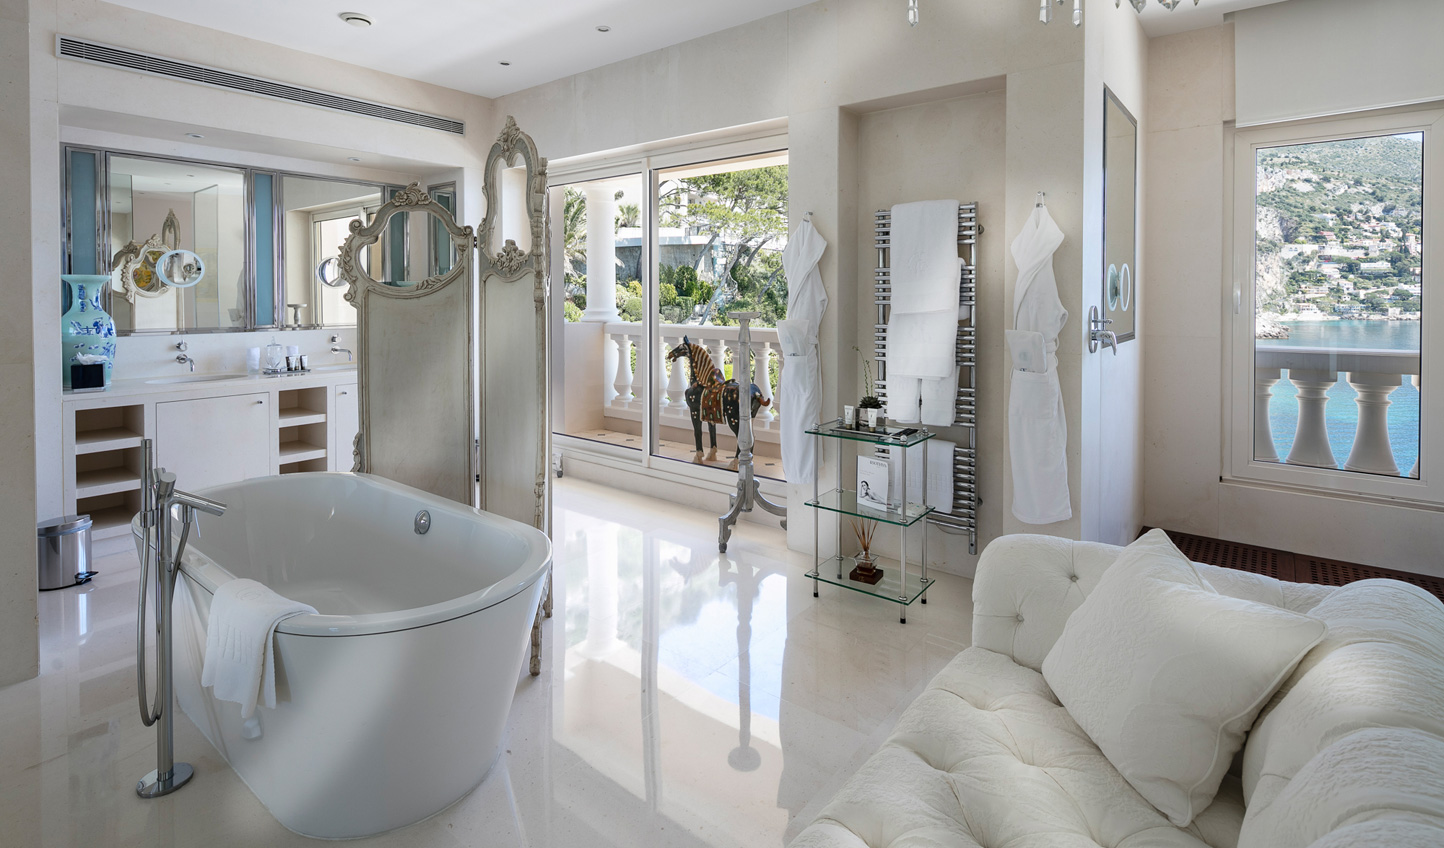 Sink into luxury in gorgeous bathrooms complete with freestanding bathtubs